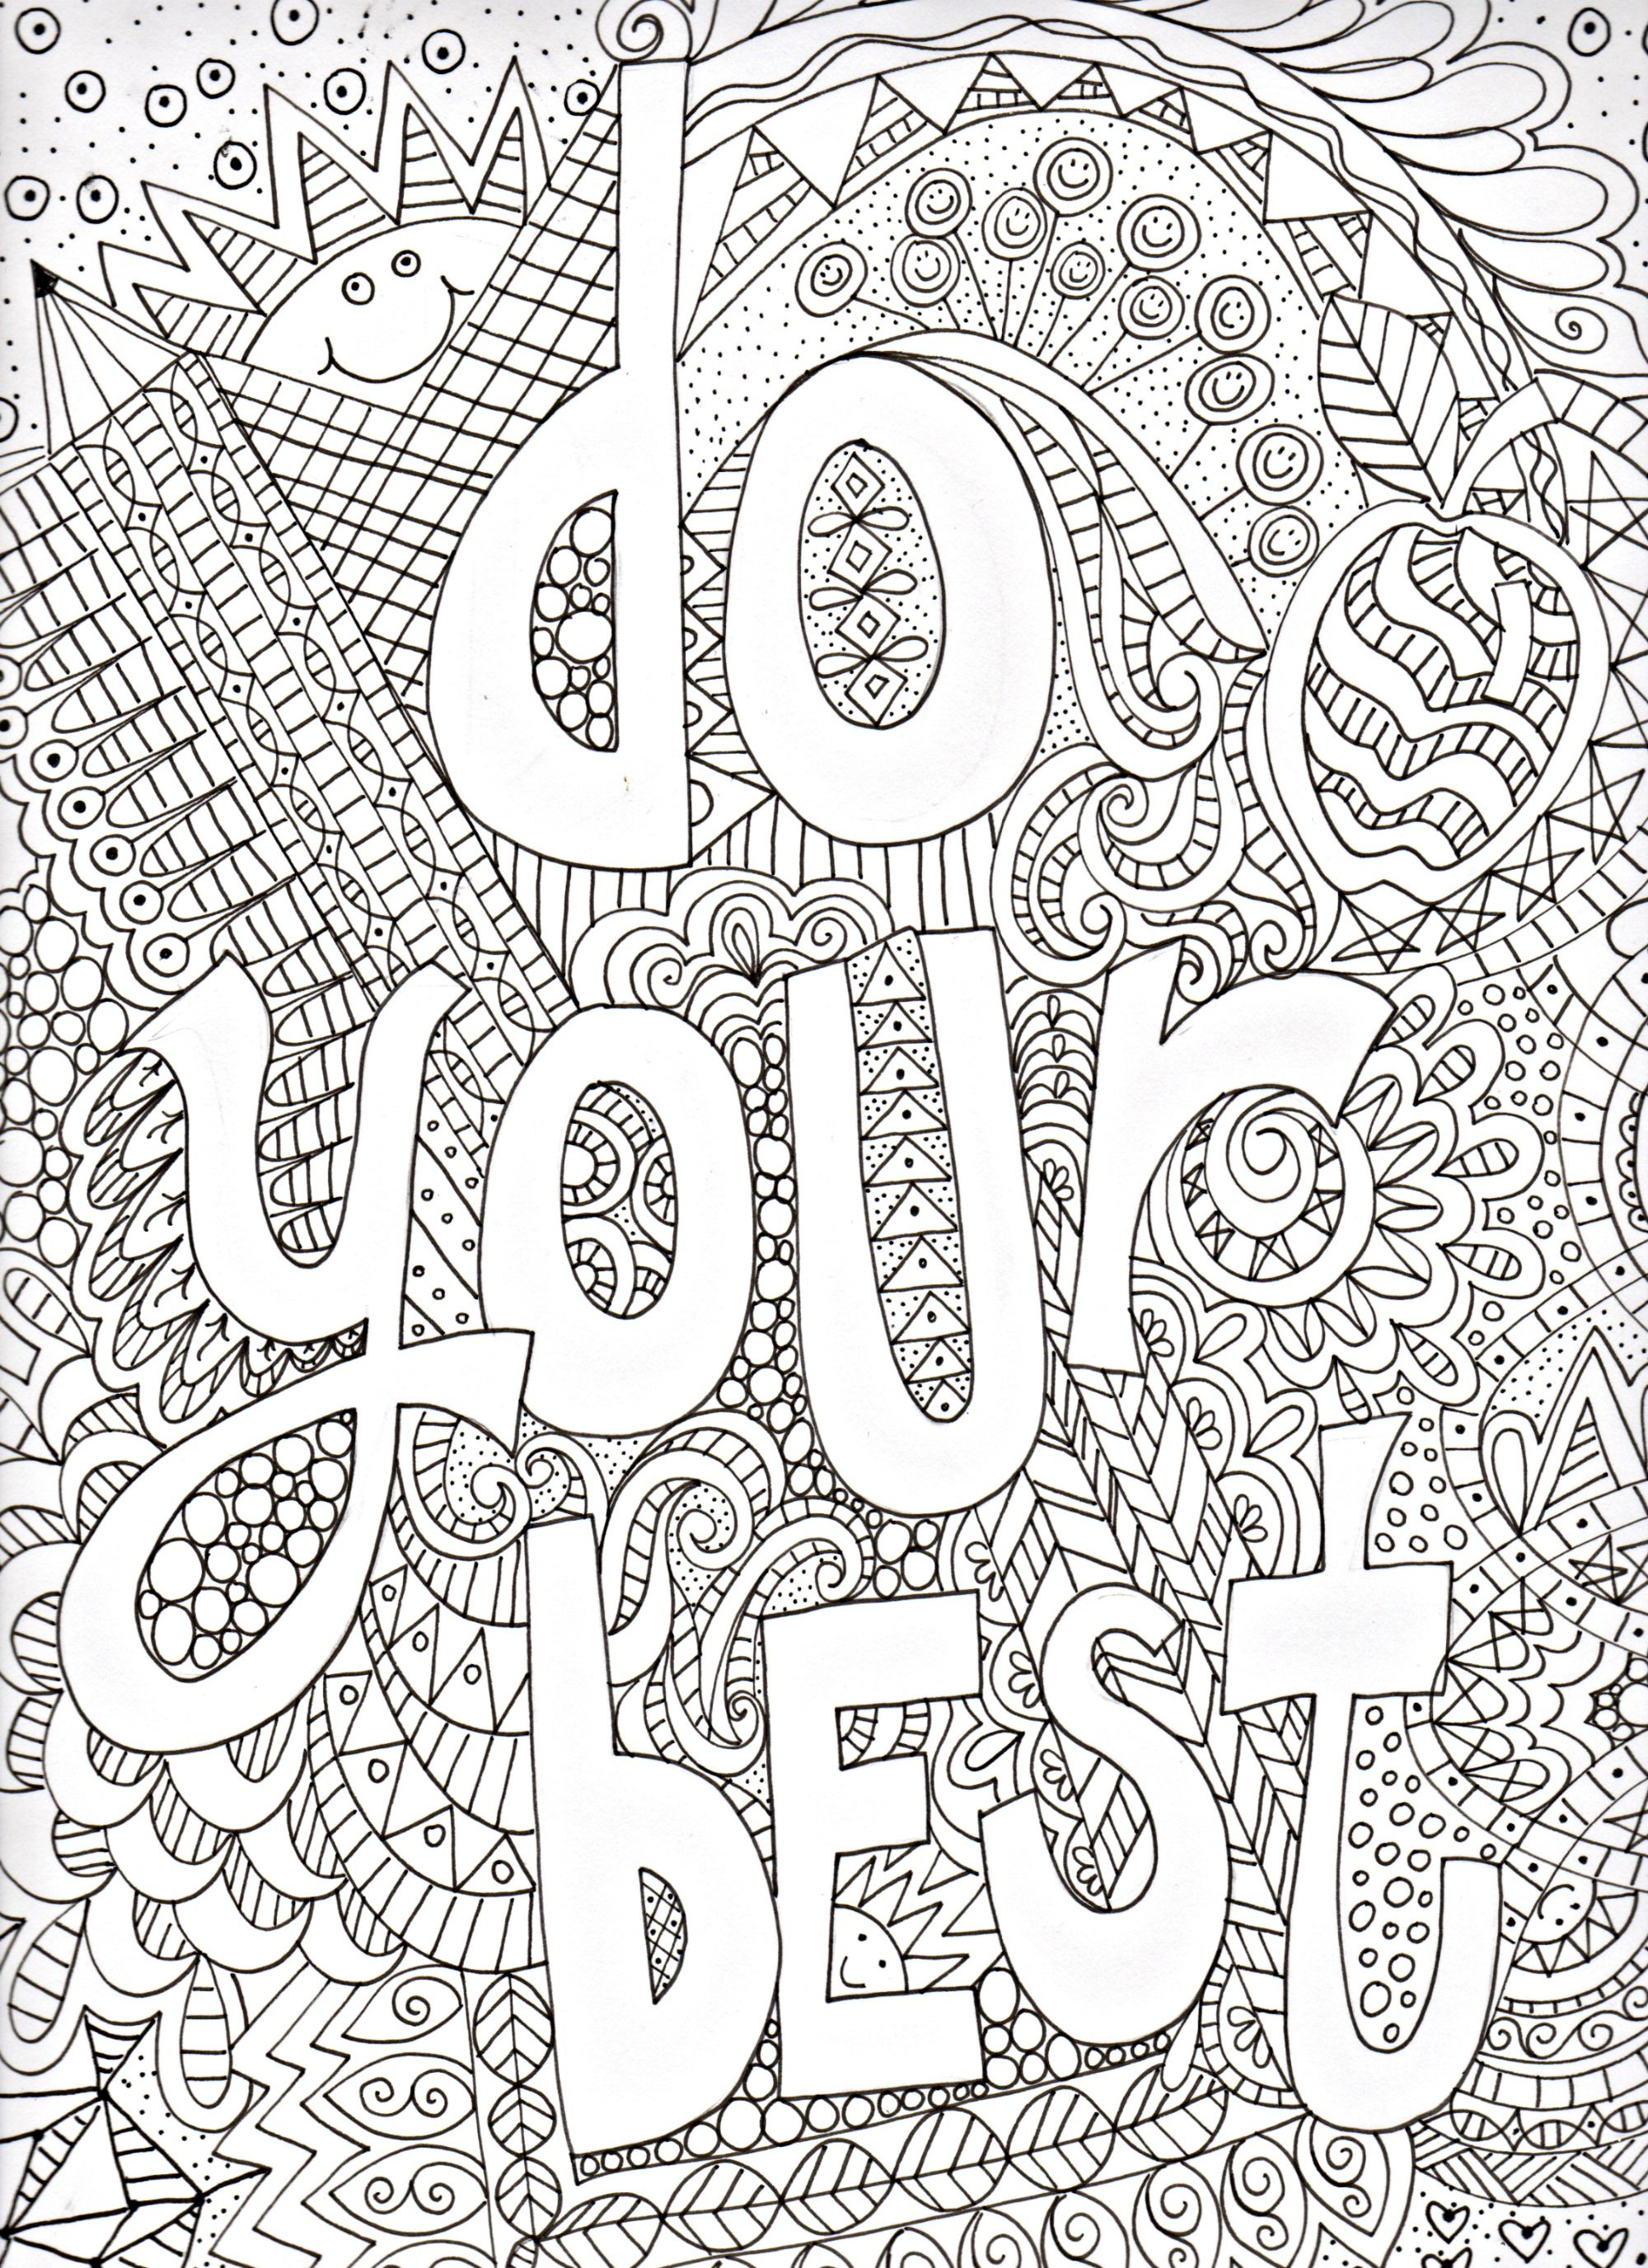 Coloring pages with quotes - Find This Pin And More On Sea Dean Art Party Motivational Coloring Page